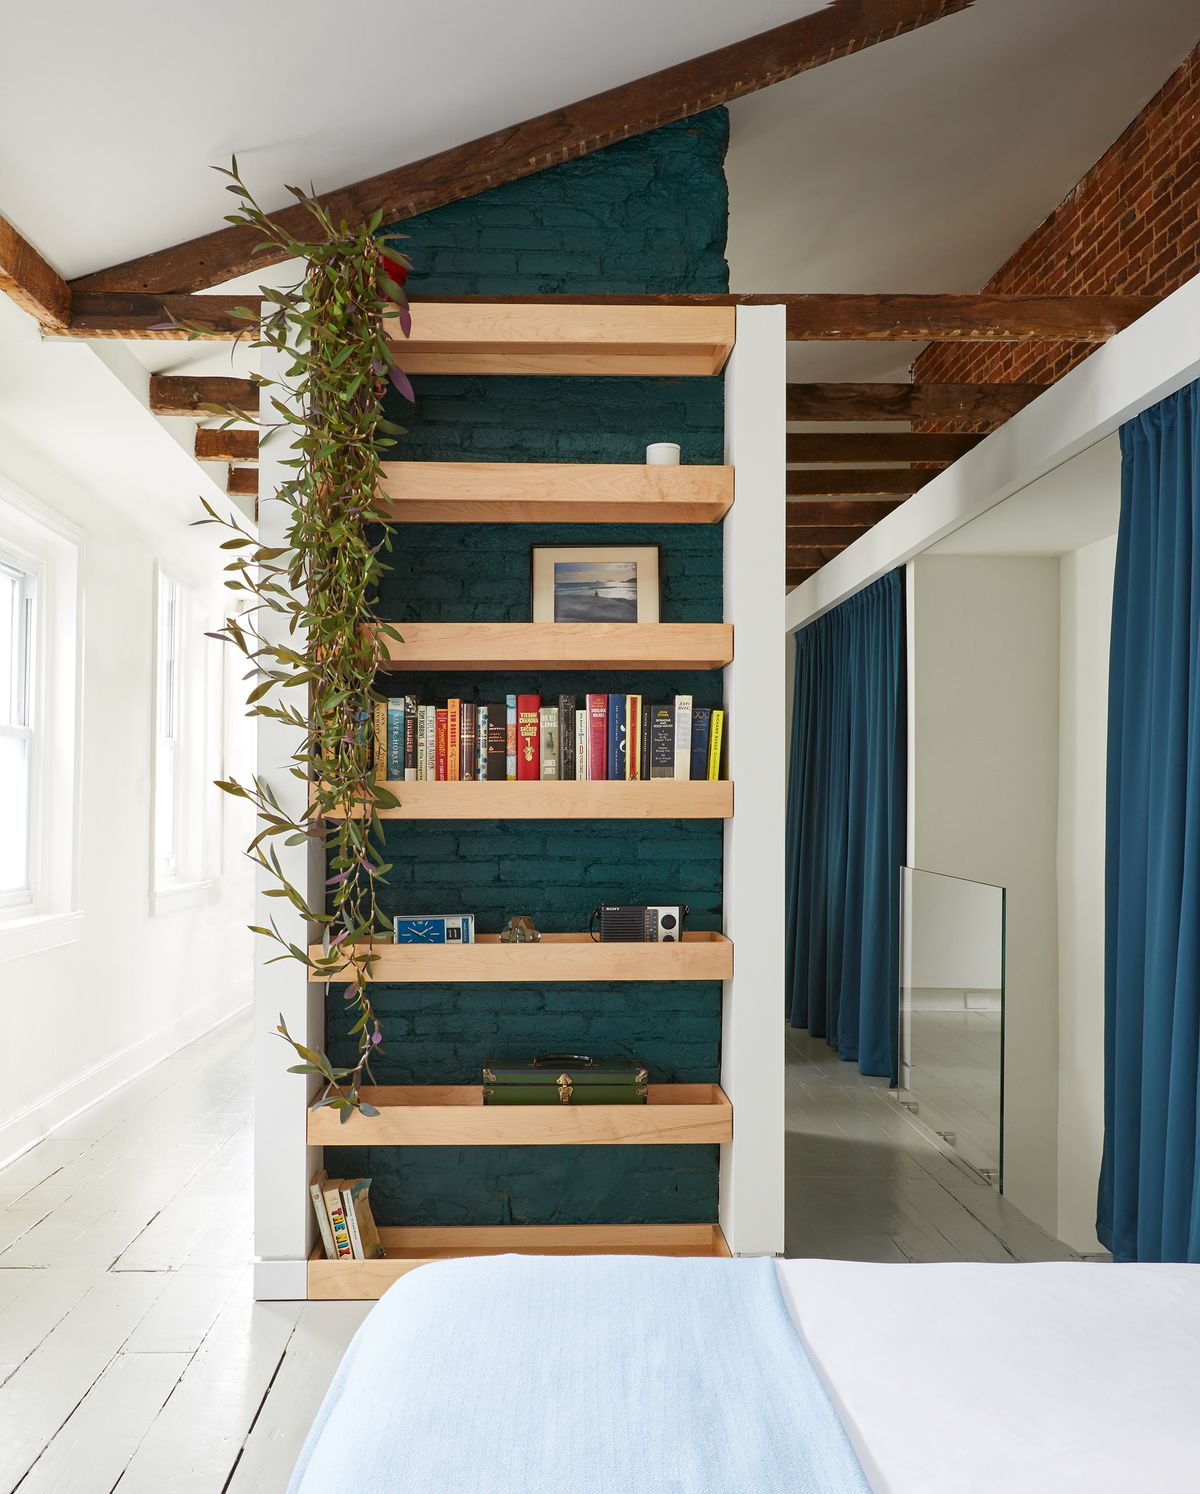 Floor to ceiling wooden shelves are full of books and objects. The shelves are attached to dark blue painted exposed brick. There are wooden beams on the ceiling. The floor is painted white hardwood. The walls are white.